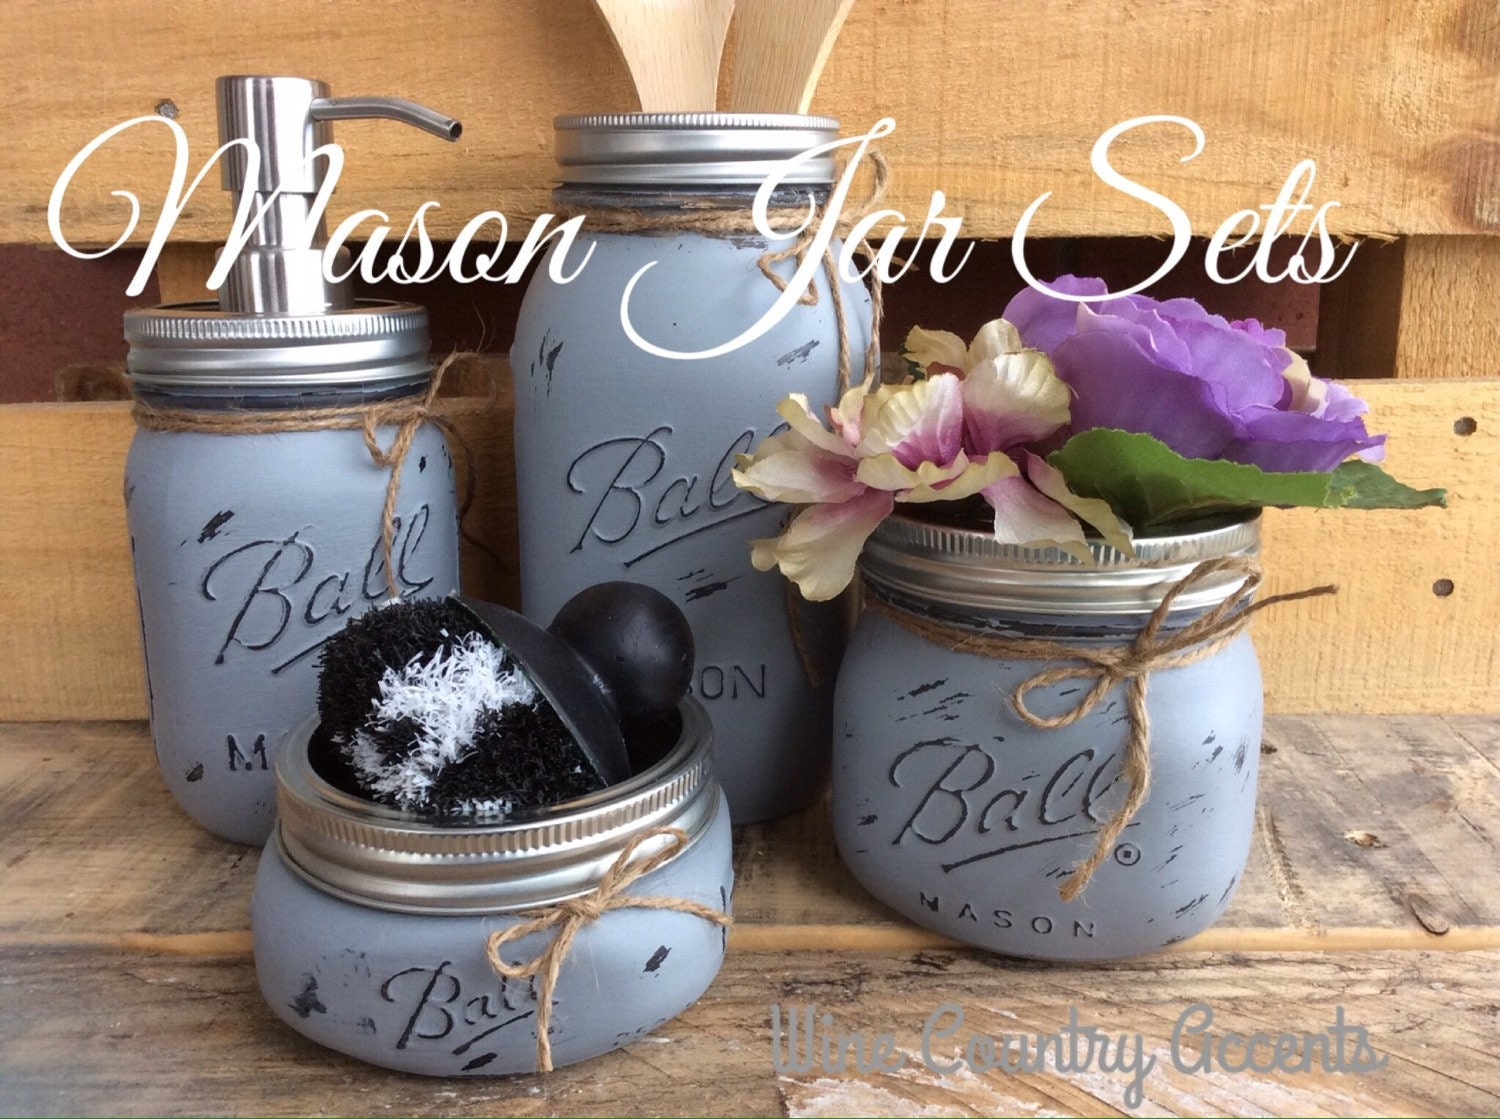 Painted mason jars mason jar kitchen set kitchin decor for Mason jar kitchen ideas